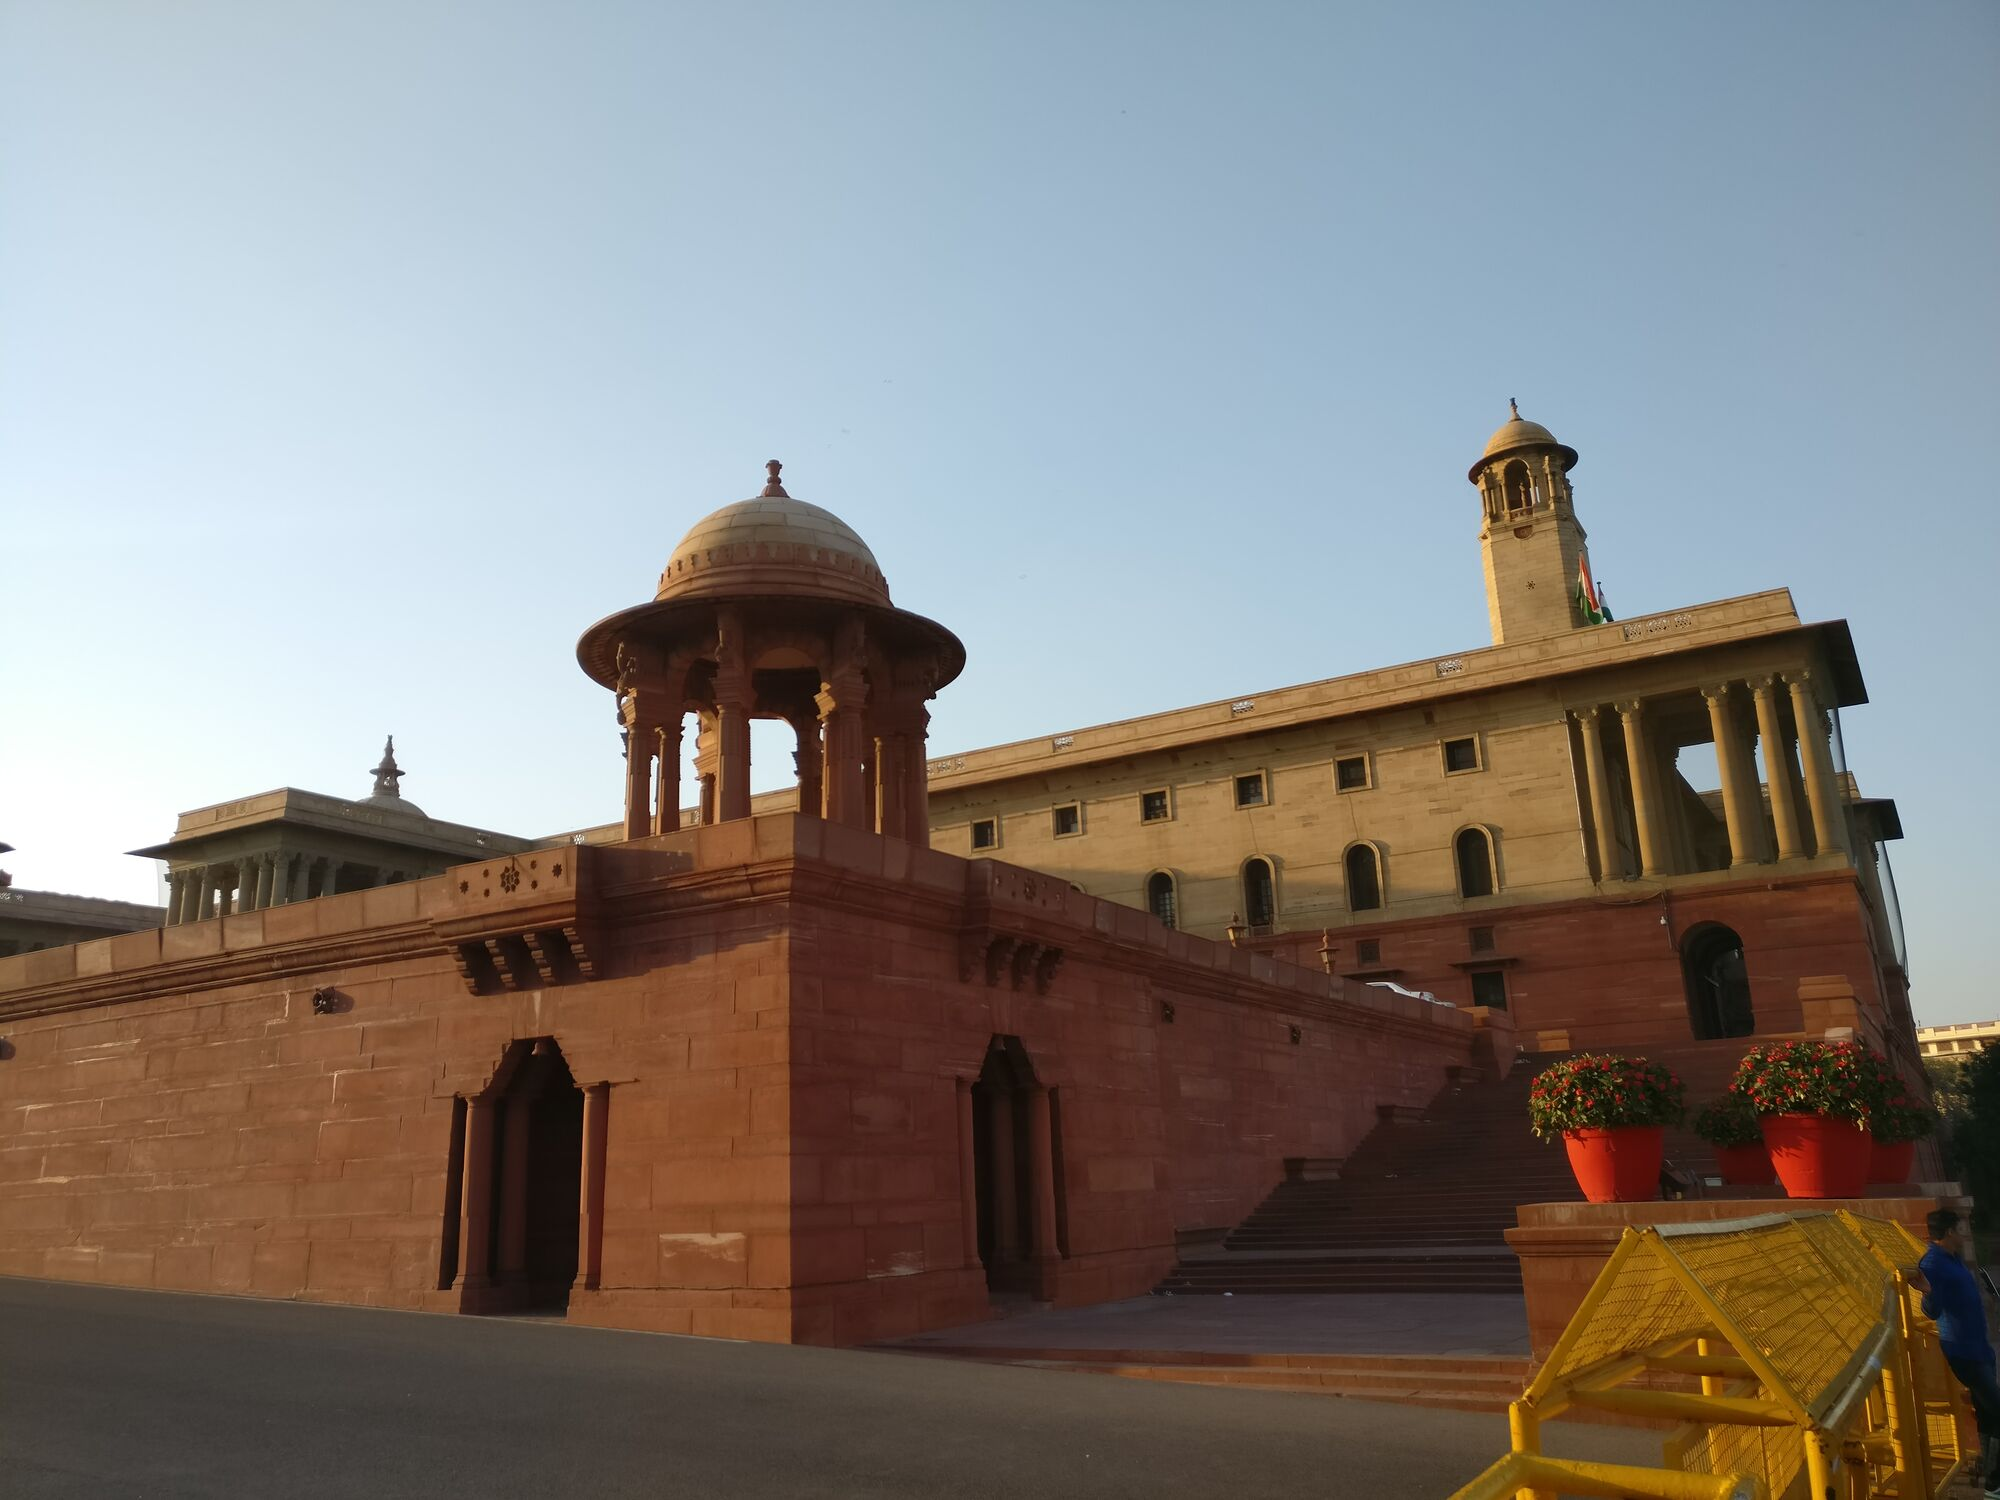 Seen here on the left is the North Block which houses the Ministry of Finance & the Home Ministry